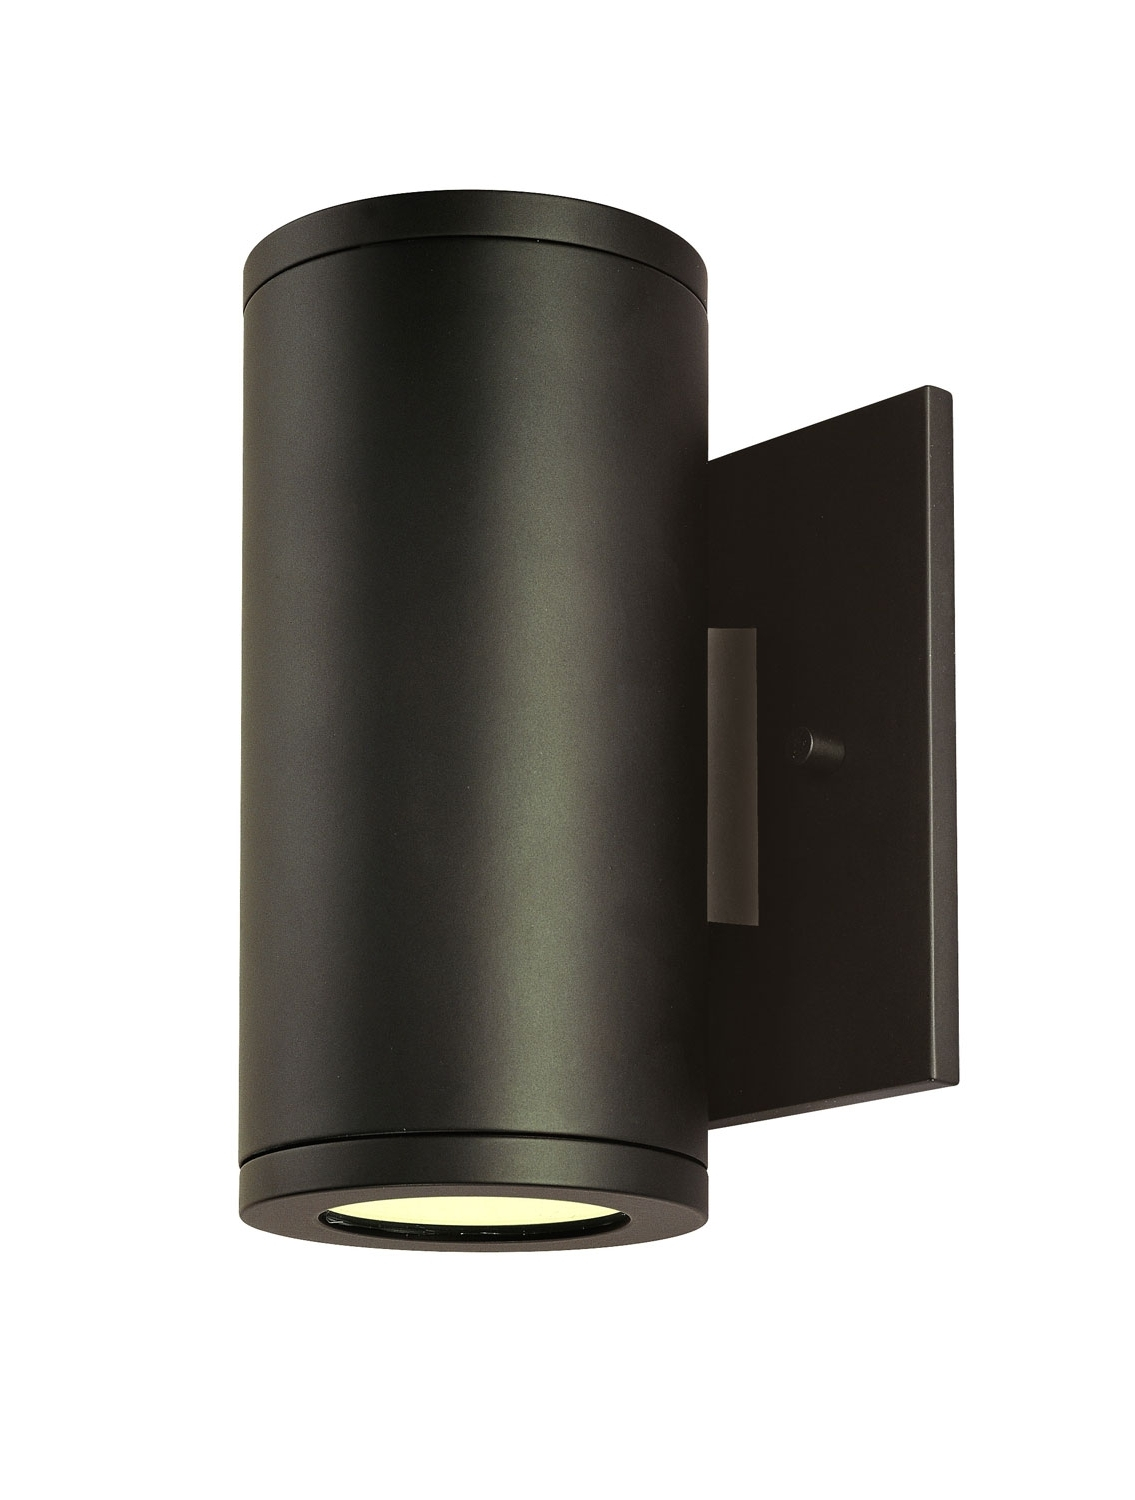 Most Up To Date Quality Outdoor Wall Lighting With Regard To Light : Fancy Lamp Shades For Wall Lights About Remodel Mount Solar (View 6 of 20)